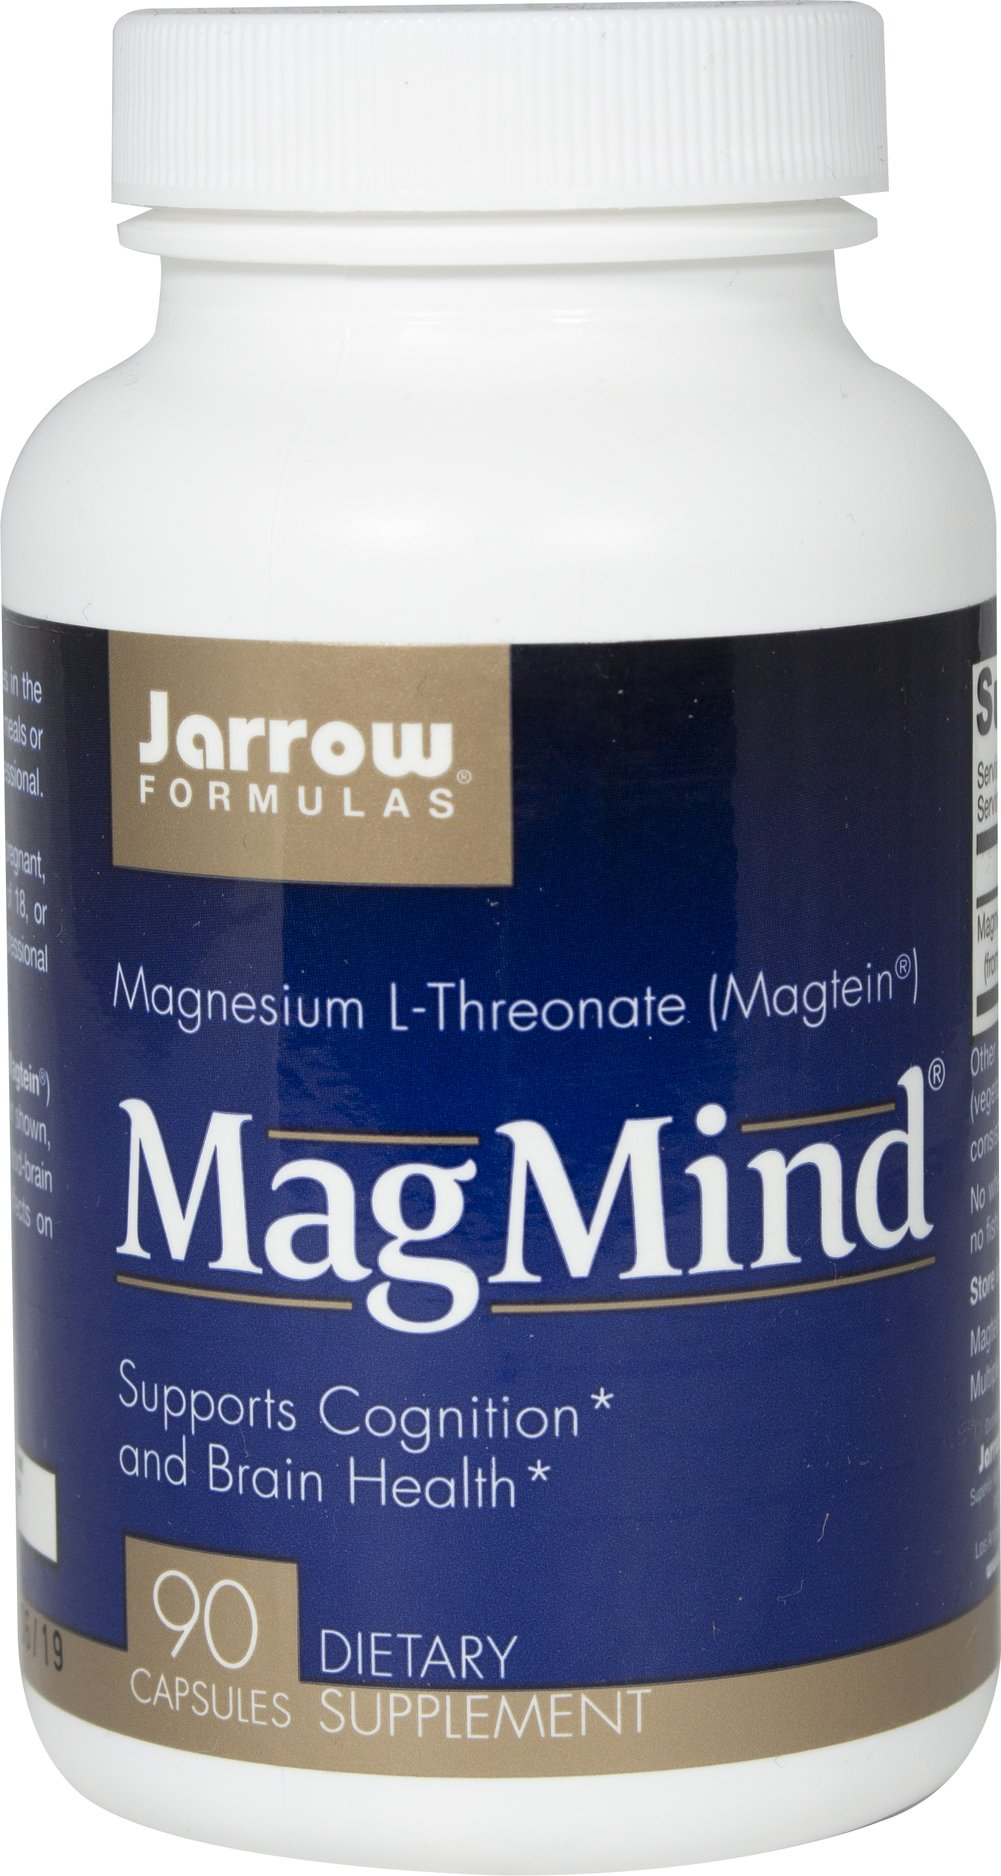 MagMind™ Magnesium L-Threonate <p><strong>From the Manufacturer's Label: </strong></p><p>MagMind™ Magnesium L-Threonate is manufactured by  Jarrow Formulas.</p><p></p> 90 Vegi Caps  $28.99